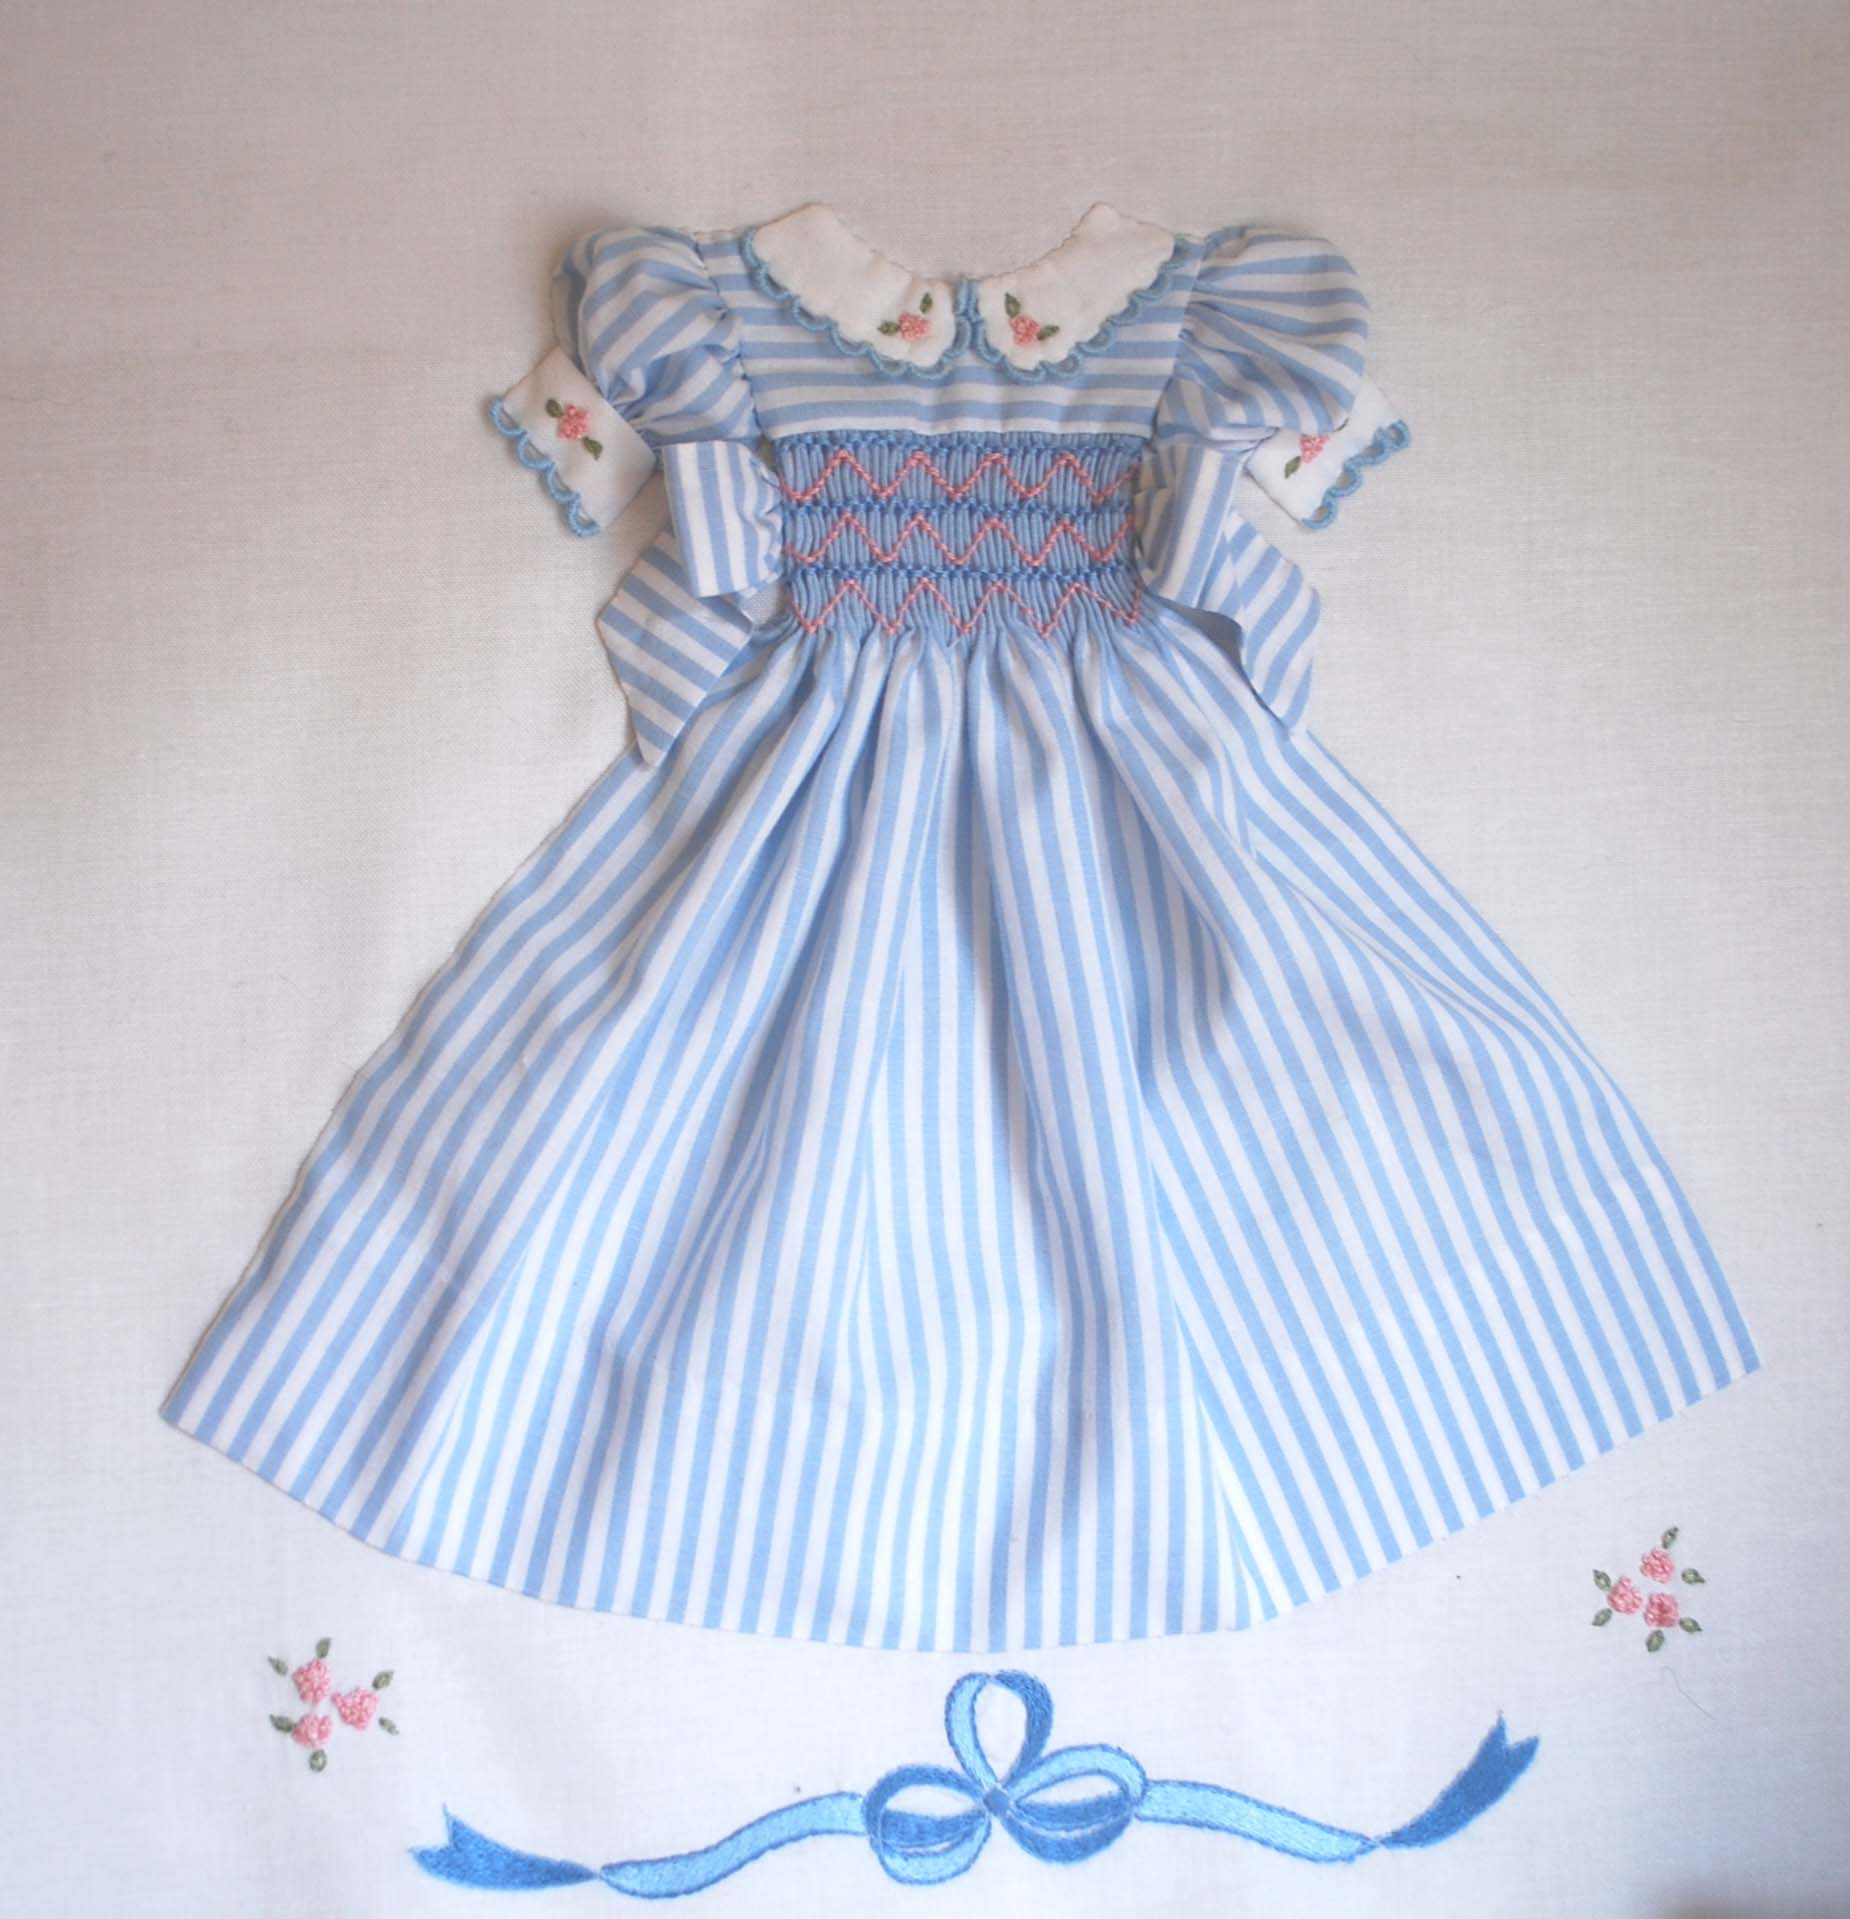 Fall Smocked Dresses For Little Girls Little Smocked Dresses